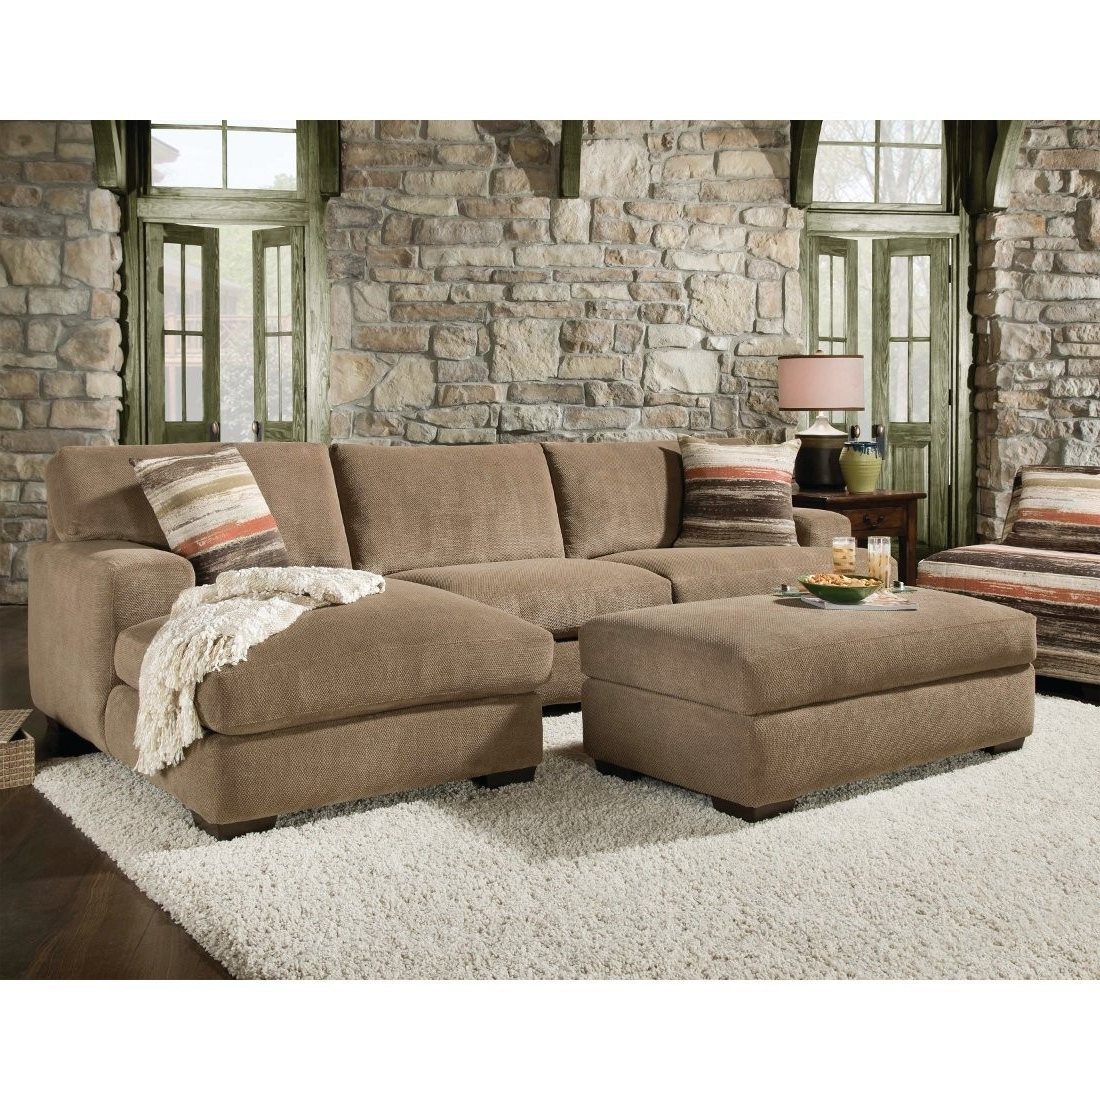 Preferred Beautiful Sectional Sofa With Chaise And Ottoman Pictures For Sectional Sofas With Chaise Lounge And Ottoman (View 4 of 15)